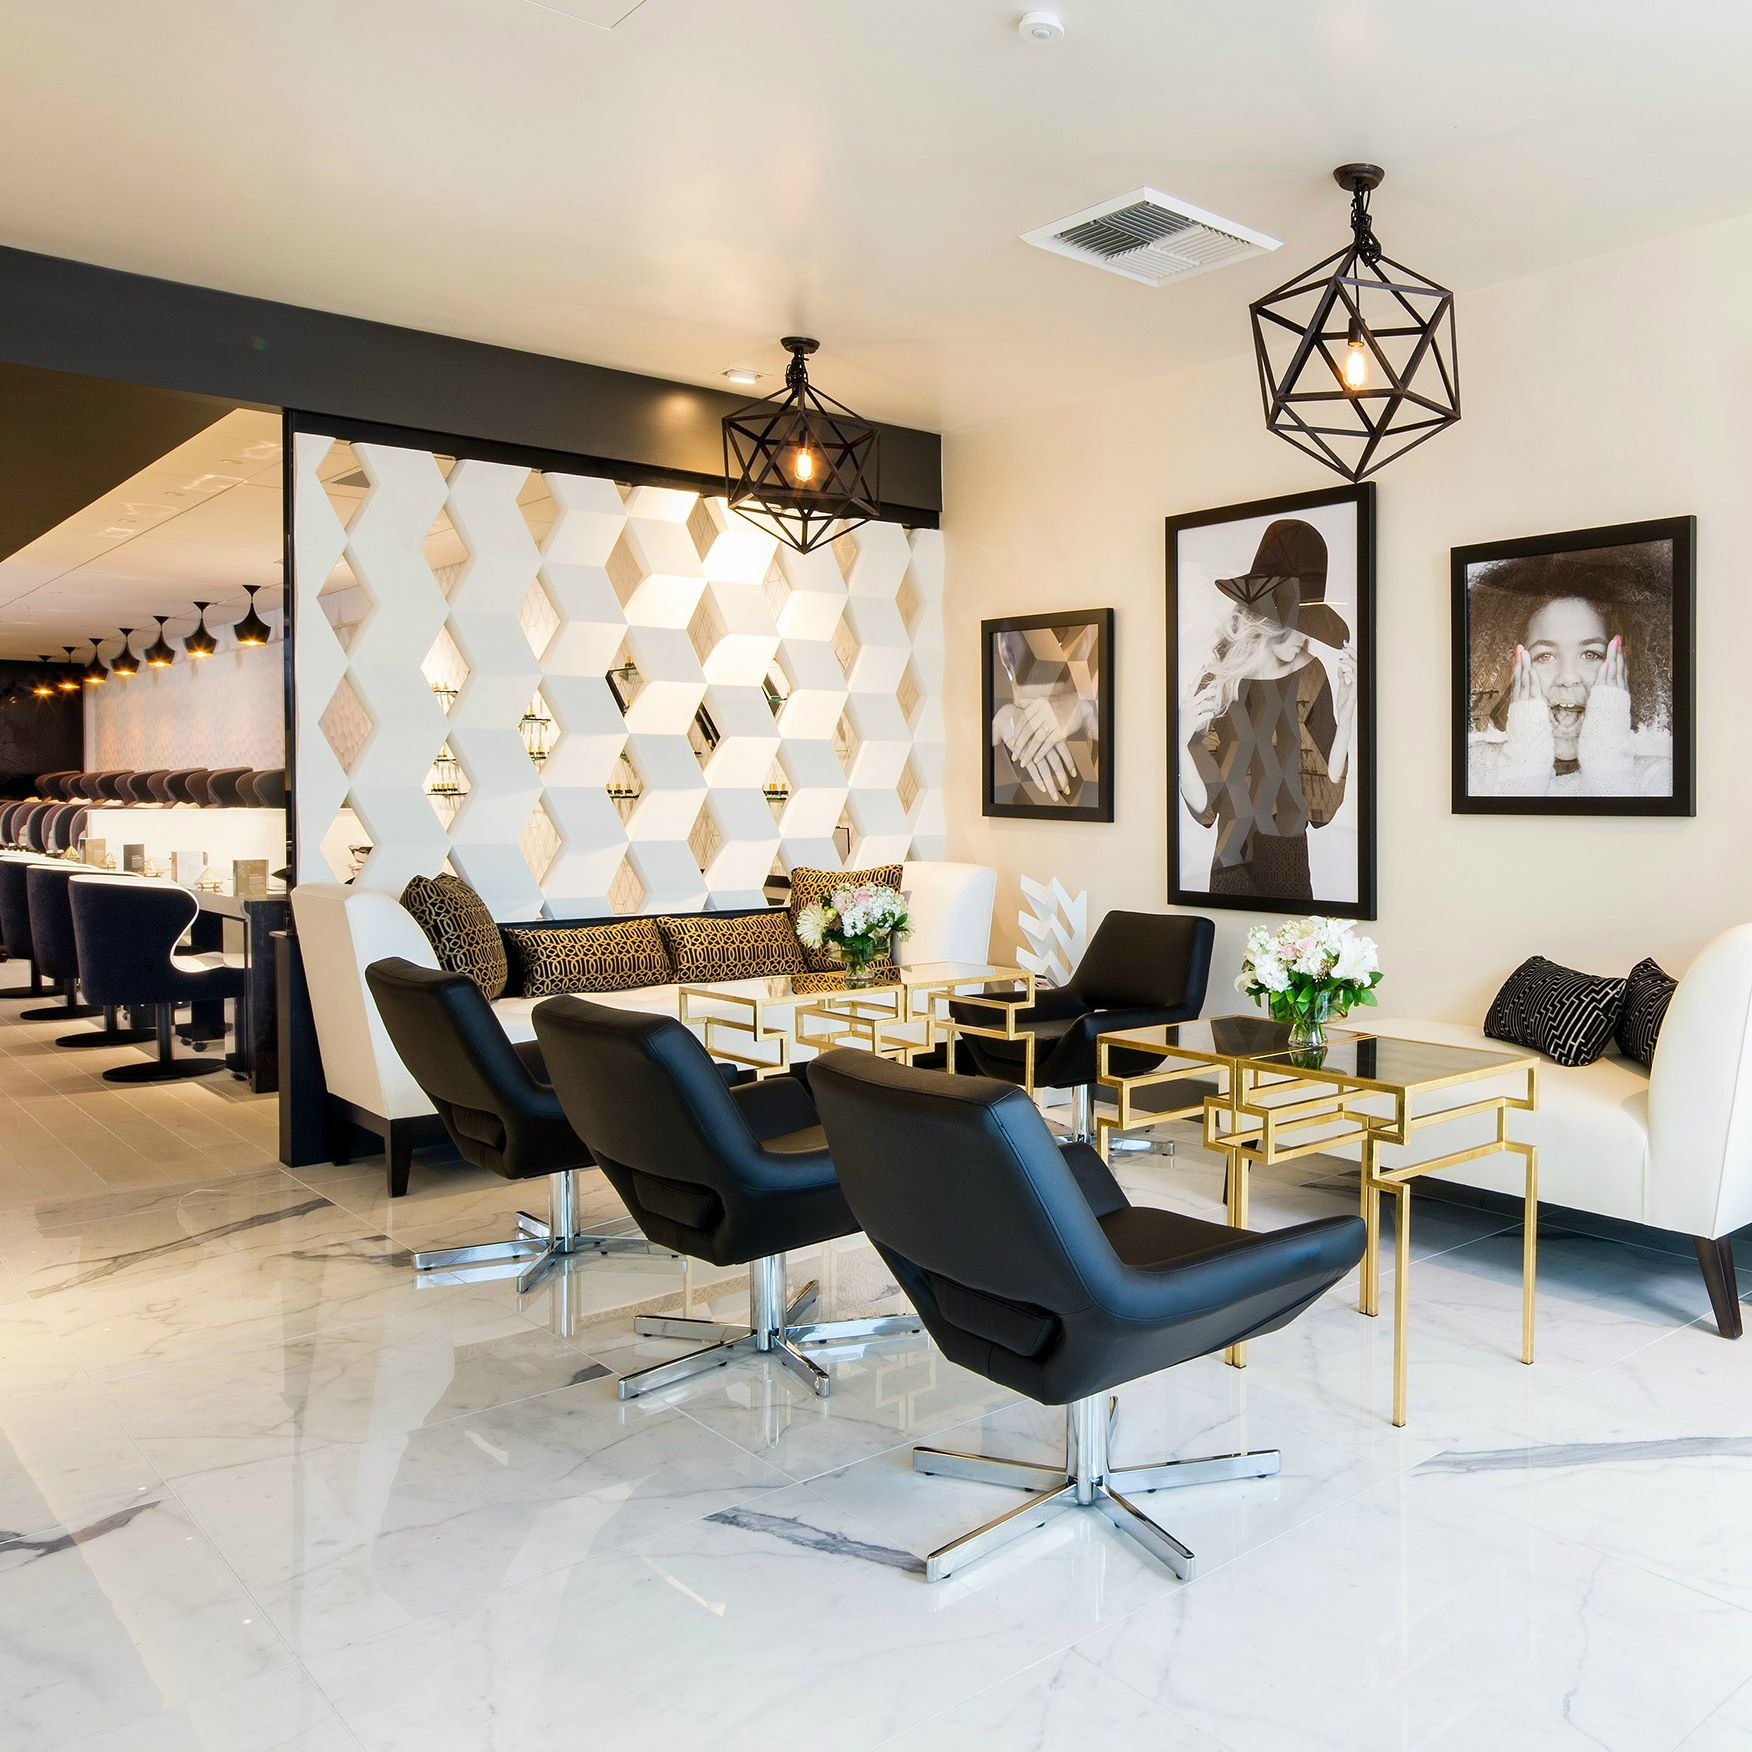 Studio Lounge Salon Interior Inspiration Beauty Salon Decor